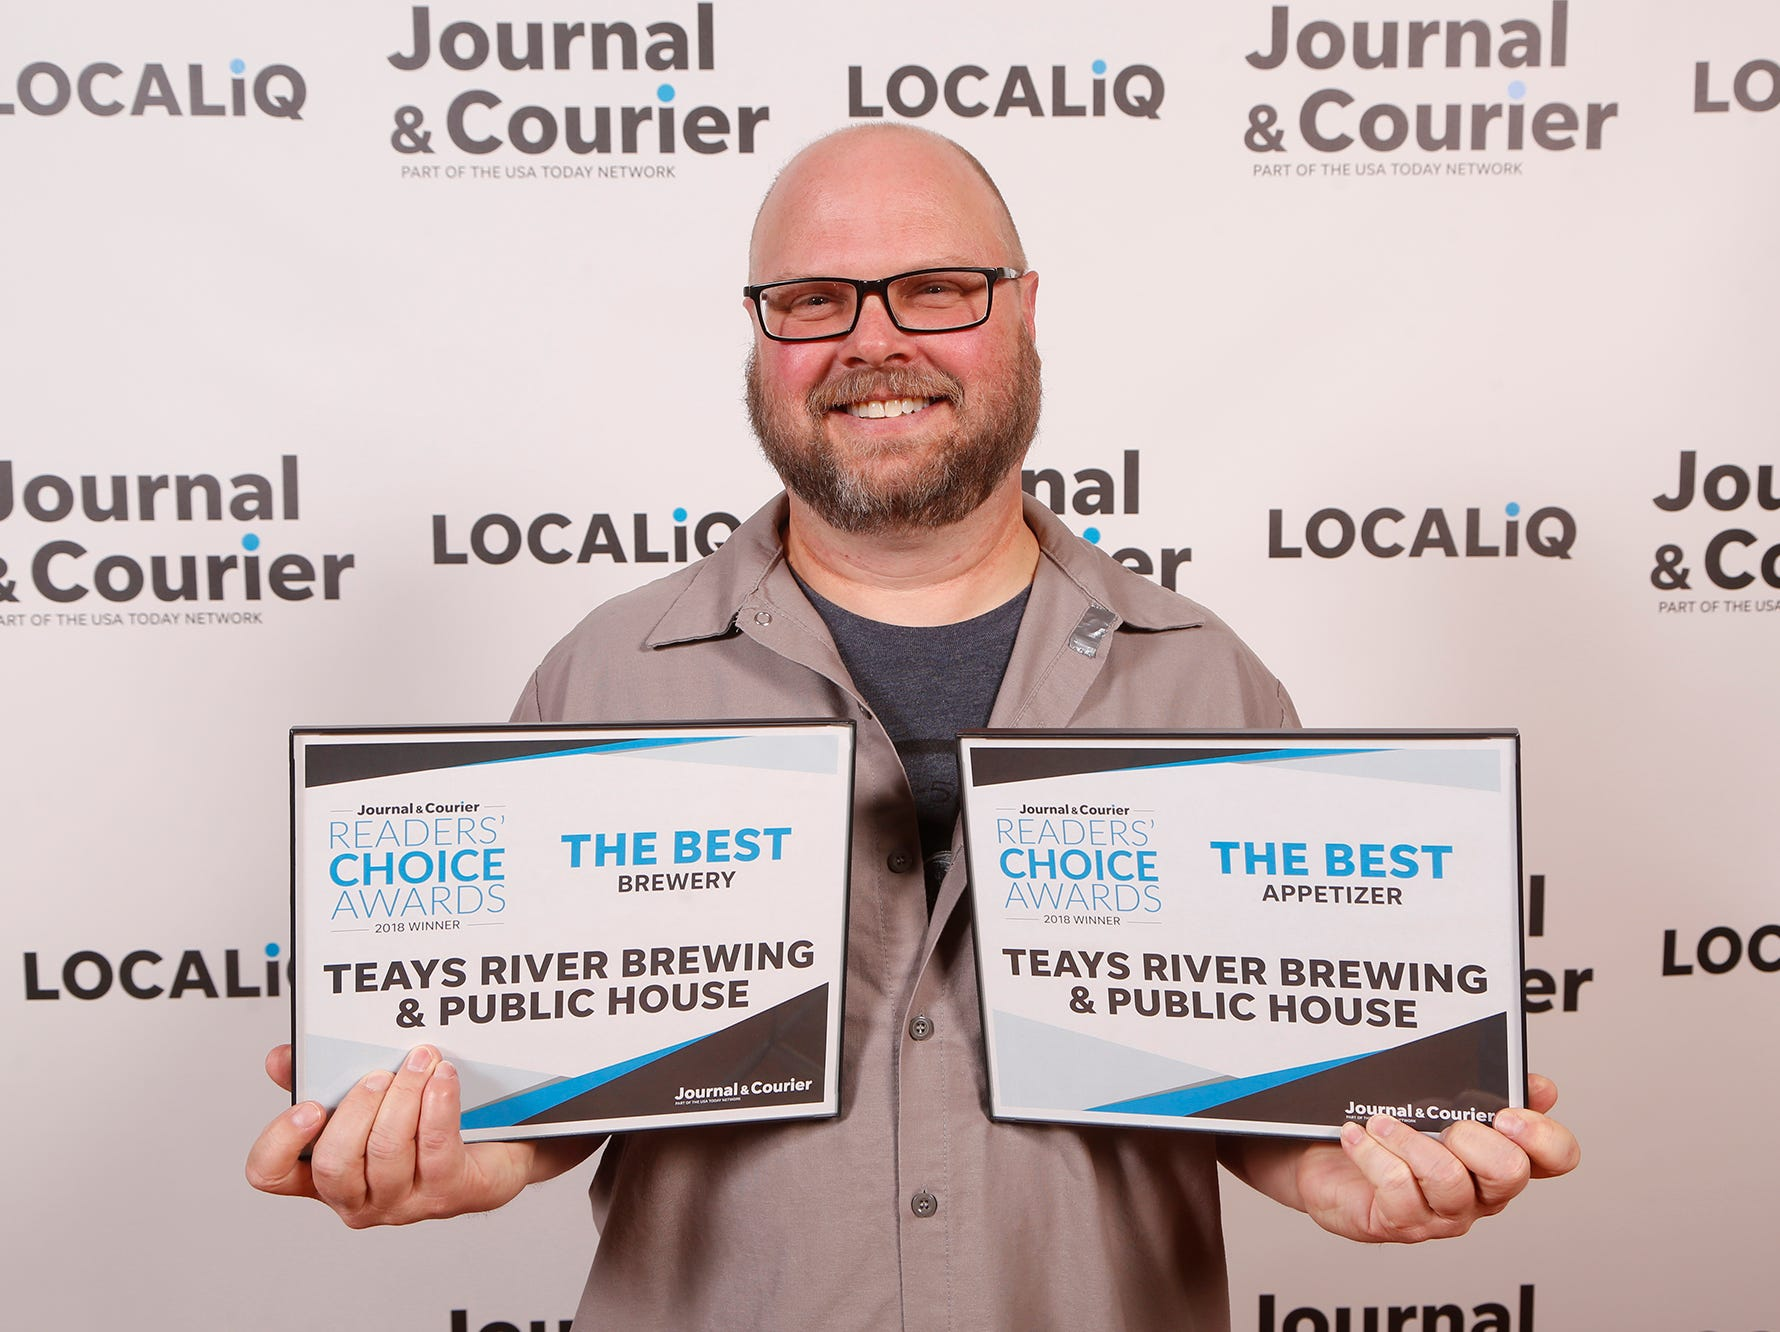 Teay's River Brewing & Public House, Journal & Courier Readers' Choice Awards winner for the best brewery and the best appetizer.